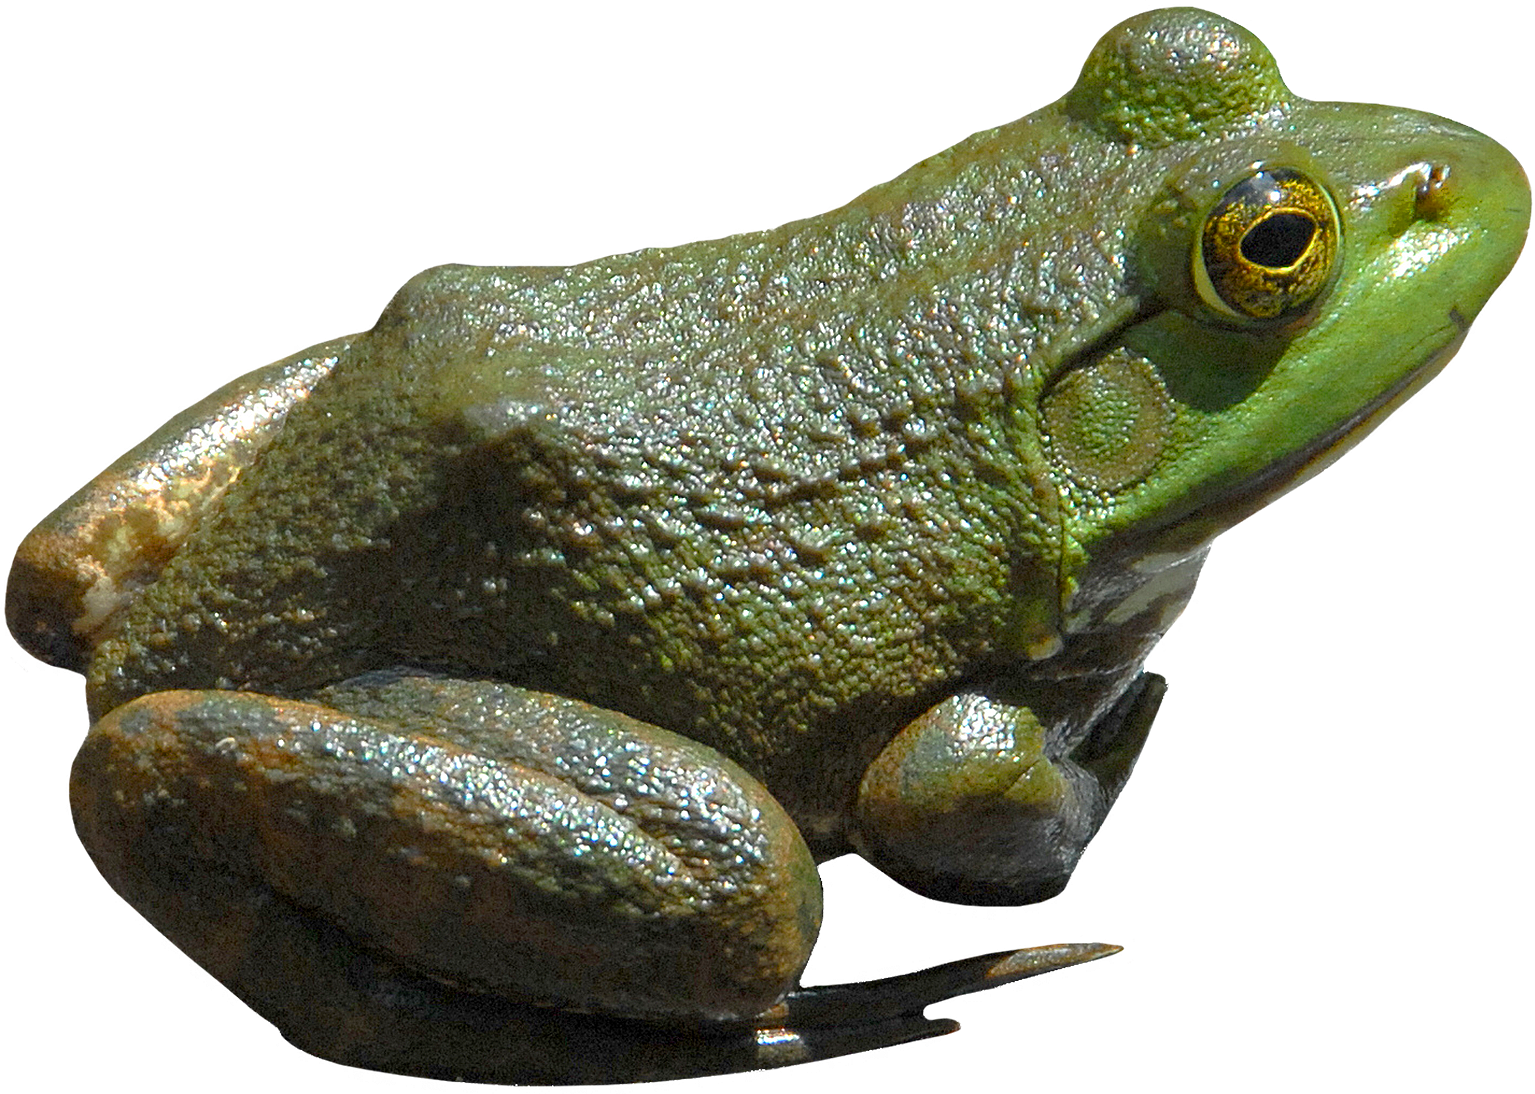 Frog Png - Frog PNG